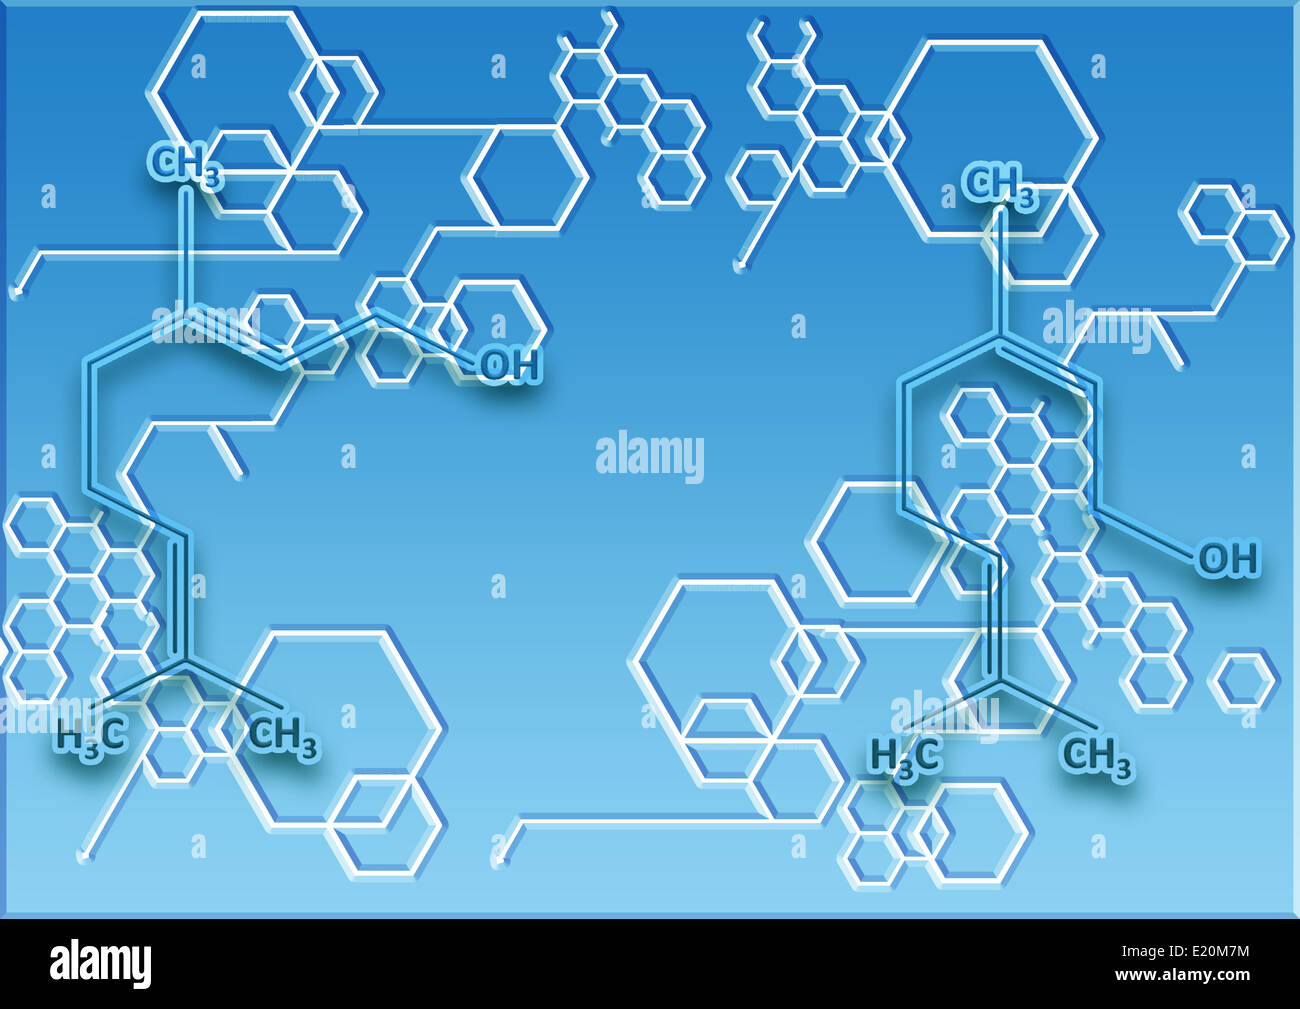 The chemical structural formula of spirit - Stock Image